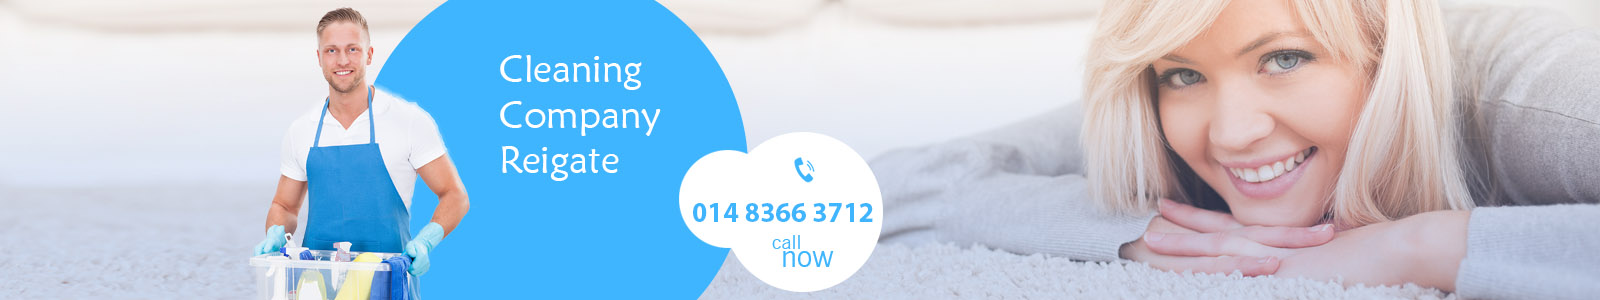 cleaning-company-reigate